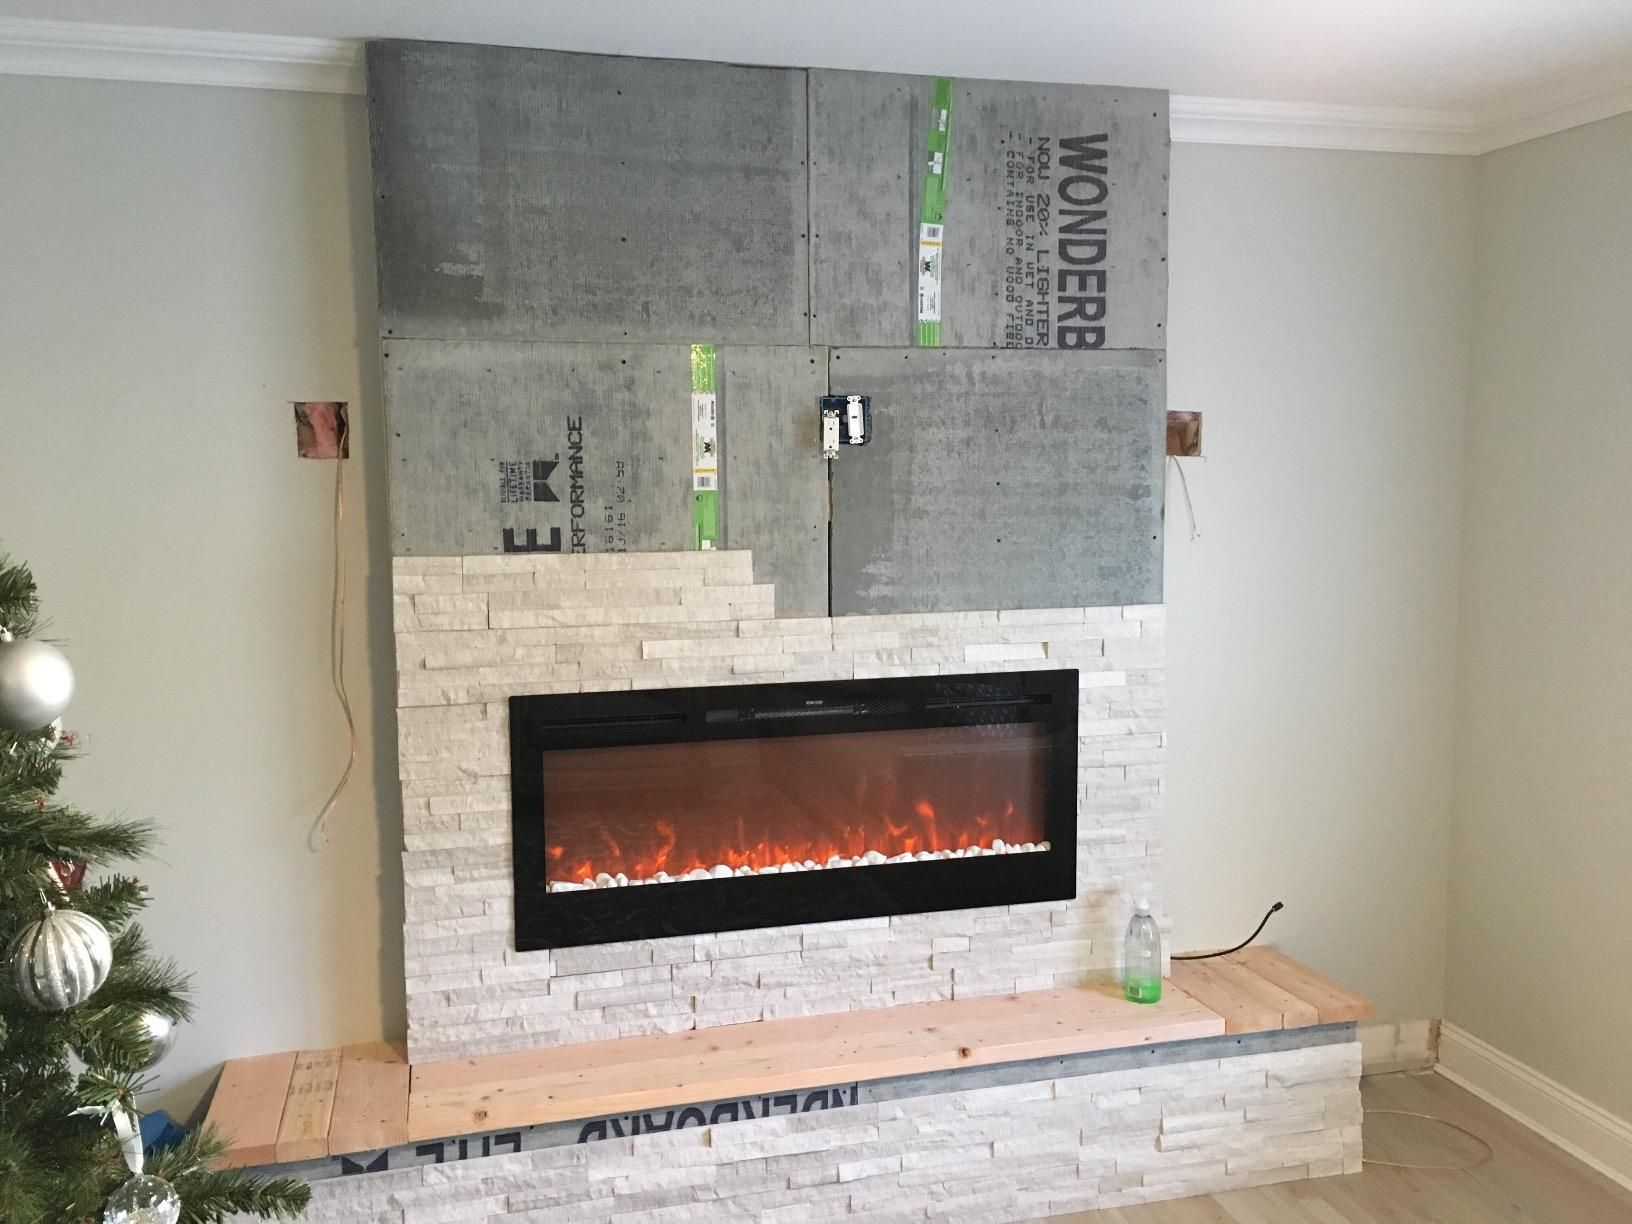 Amazon Com Gibson Living Gl2050ws Sydney 50 Inch Pebble Recessed Pebble Wall Mounted Electric Firep Wall Mount Electric Fireplace Fireplace Electric Fireplace